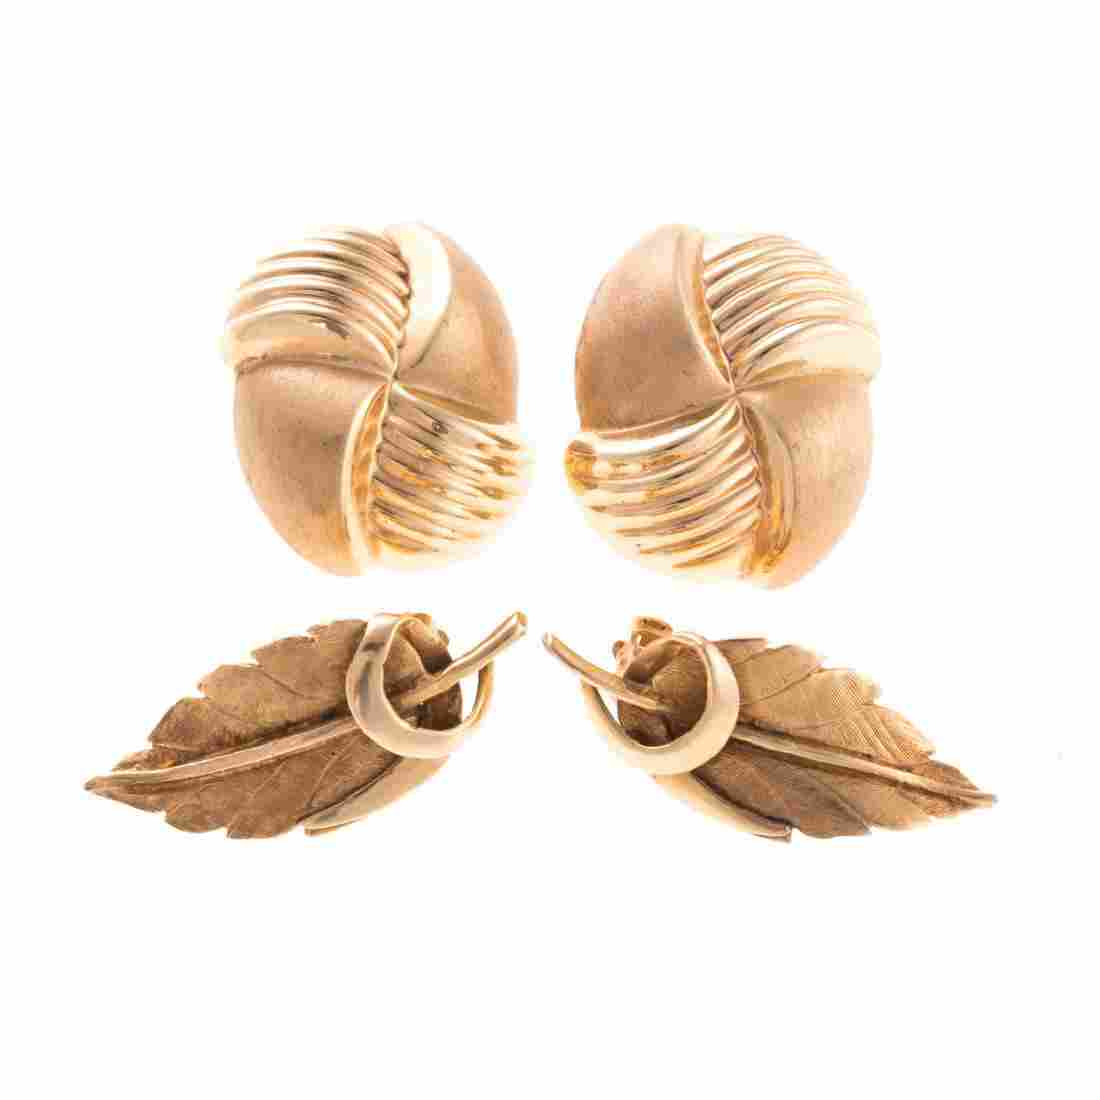 Two Pair of Lady's Ear Clips in 14K Gold